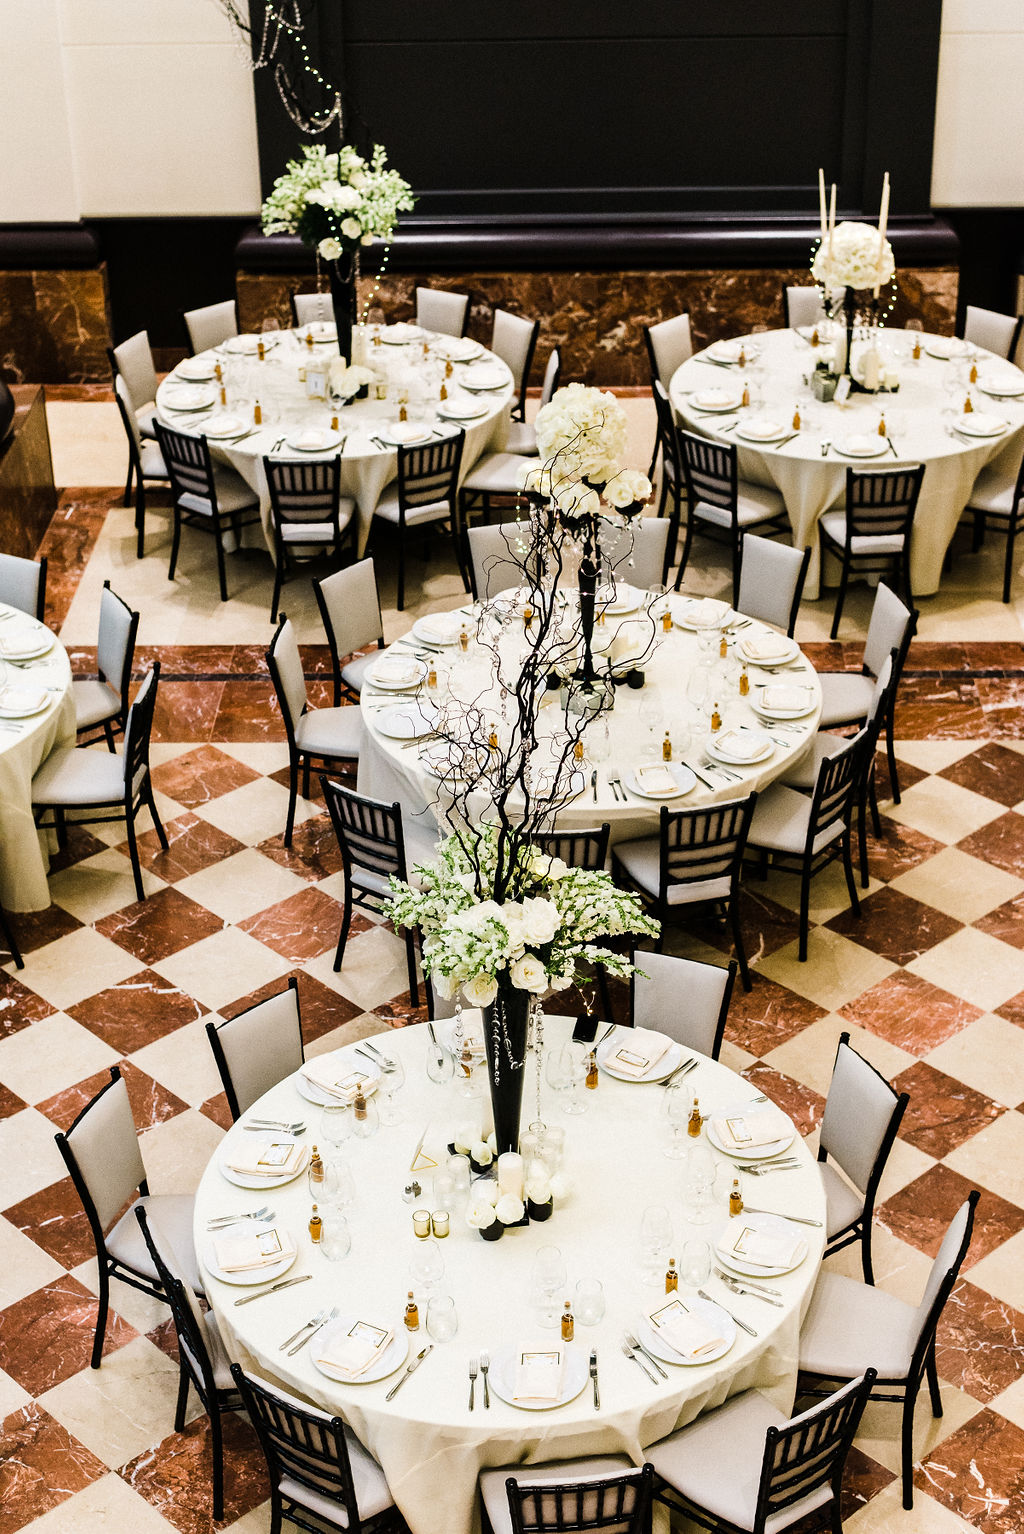 The Goodwin Hotel and Porron & Pina put on a wedding of a life time with a intimate floor plan designed with round tables - Pearl Weddings & Events